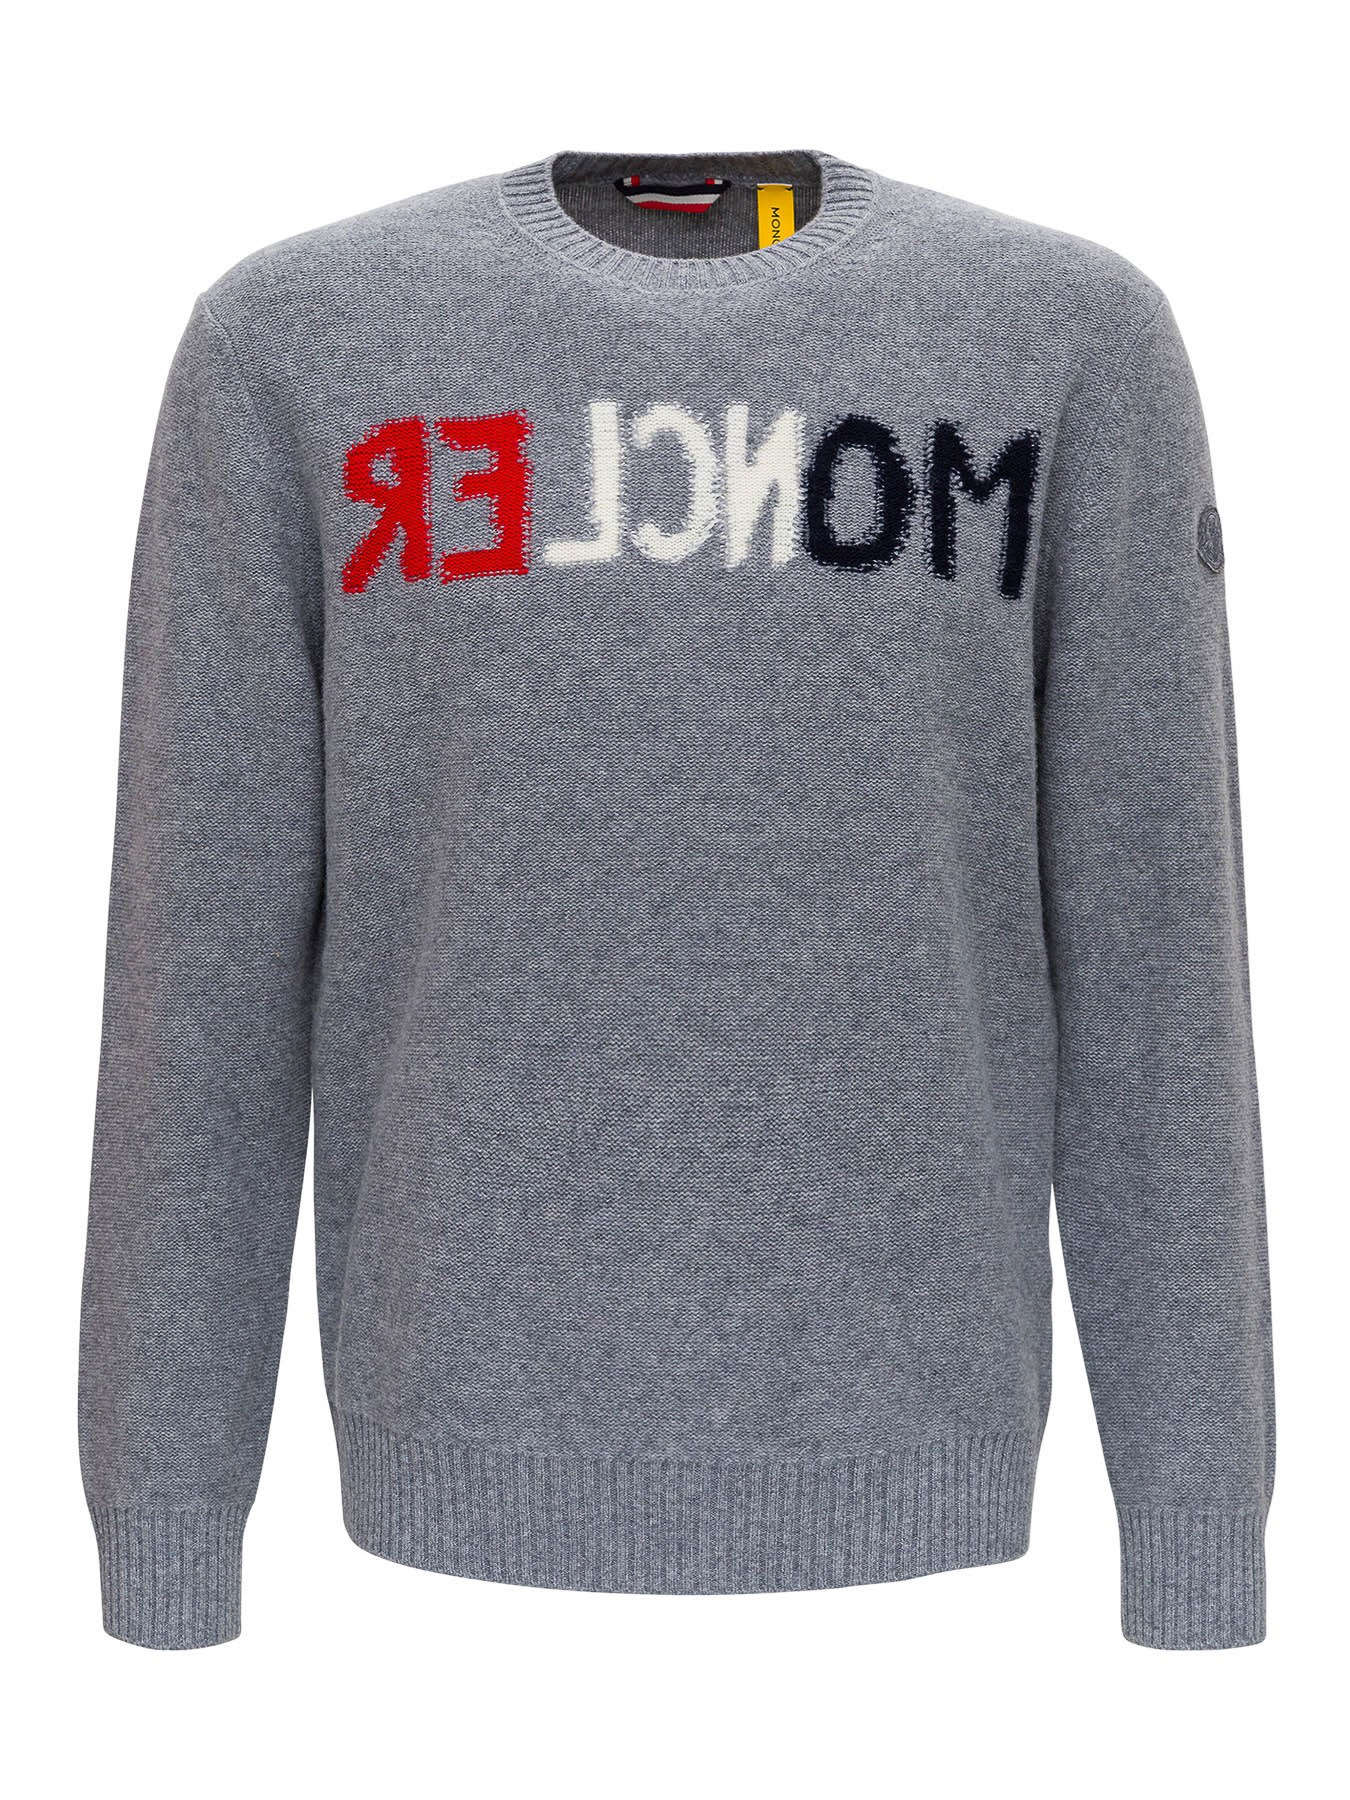 Moncler Genius LOGO SWEATER BY 1952